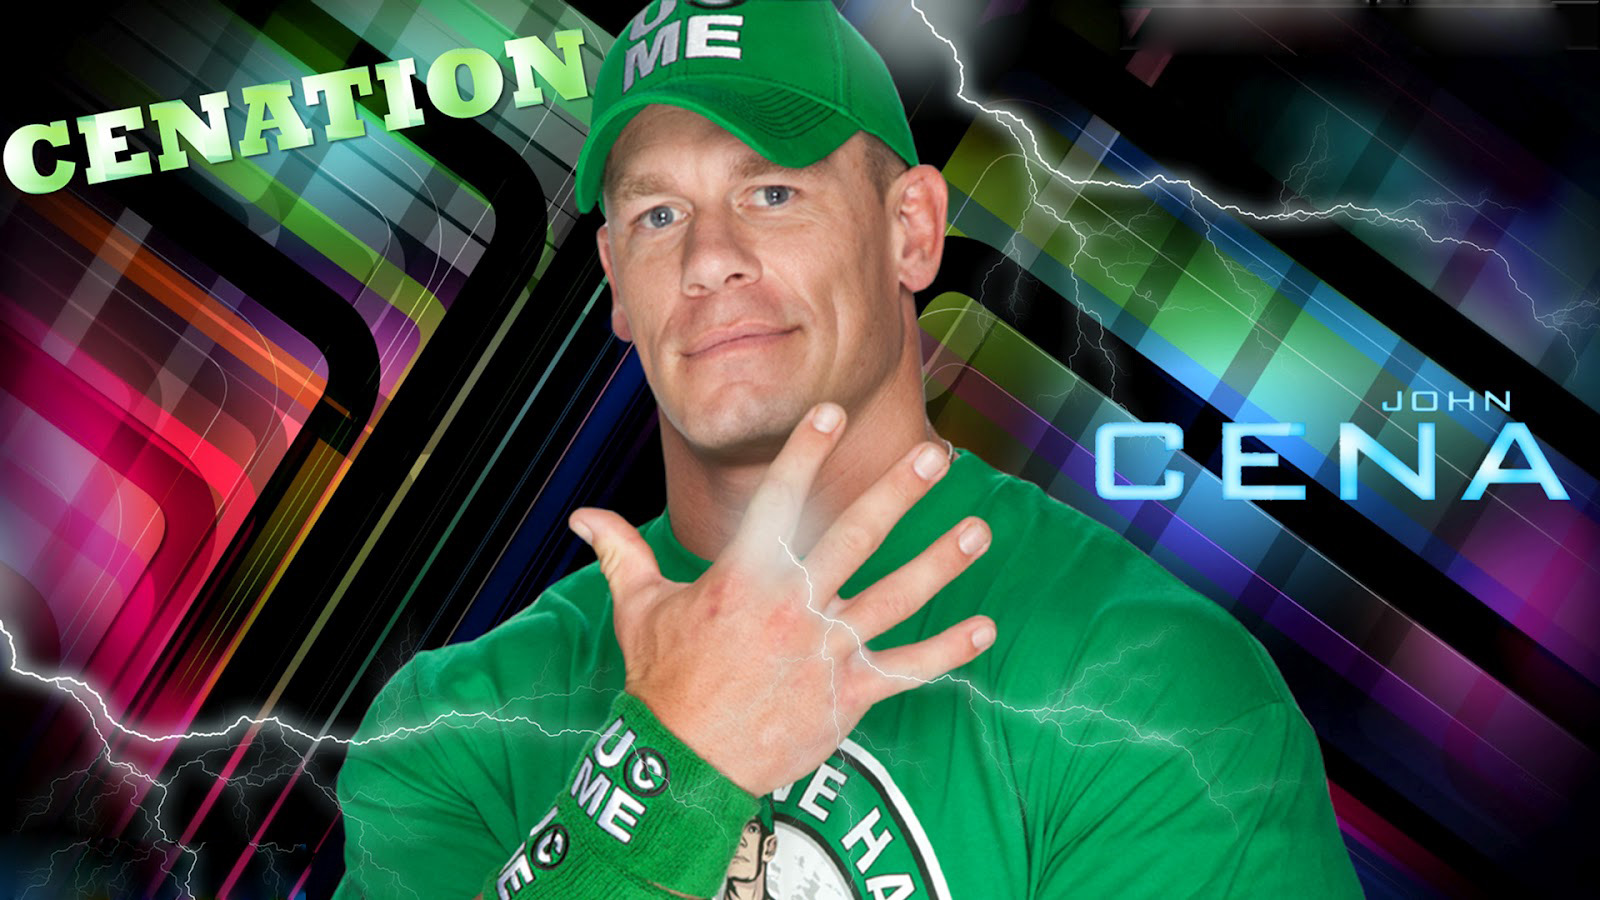 http://2.bp.blogspot.com/-gffPr1tSKEk/T7v9pNg97-I/AAAAAAAAC1g/2EQ9oY-rE-s/s1600/Cenation-Green-T-Shrit-Wallpaper.jpg